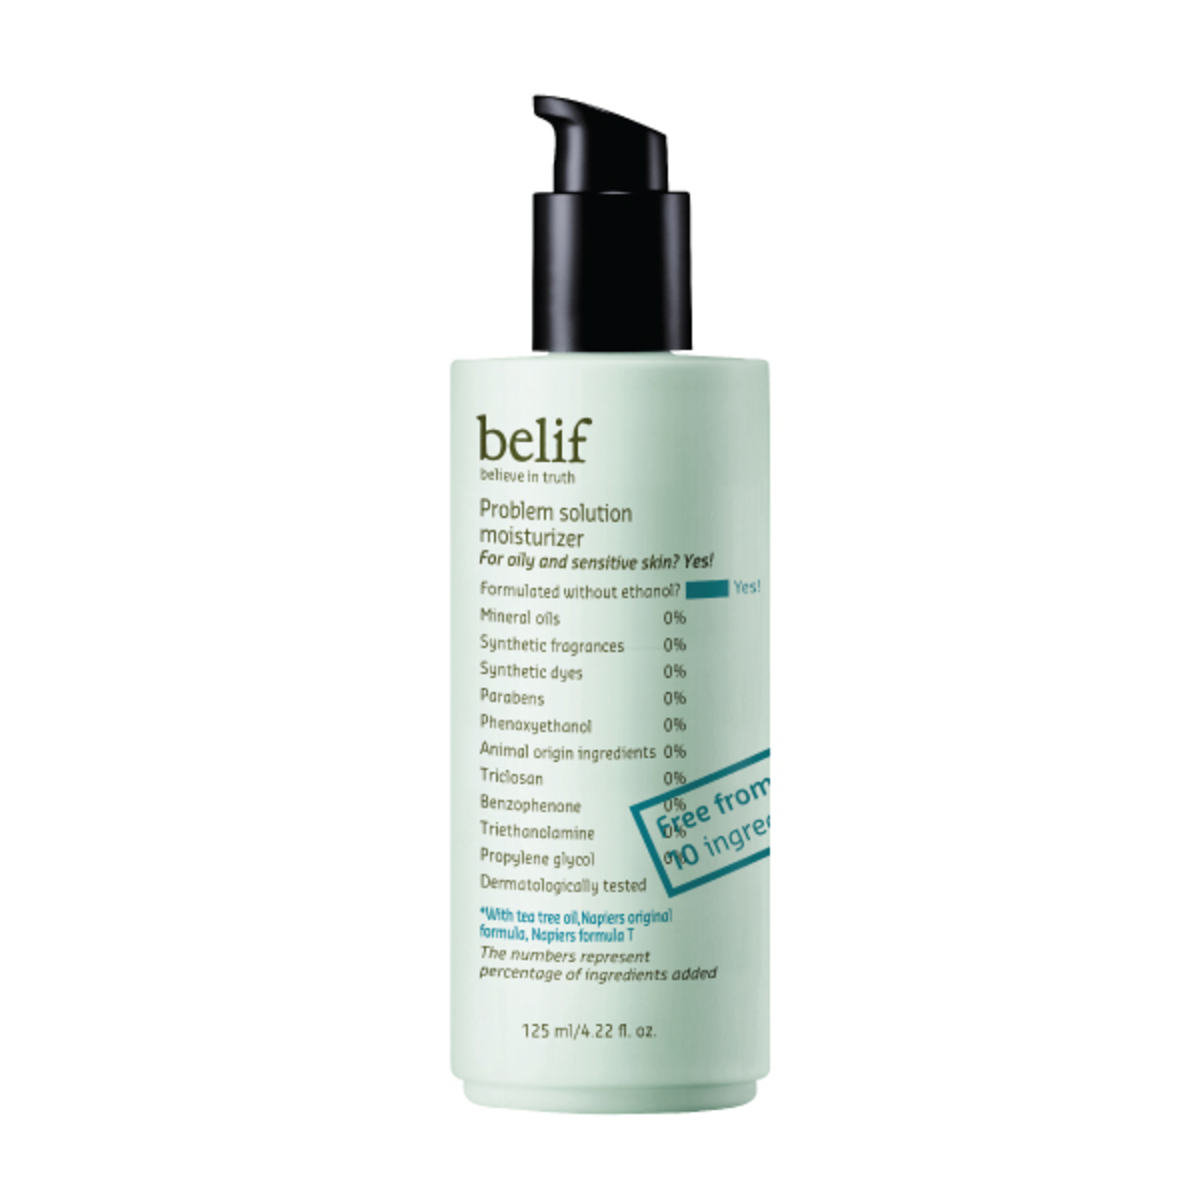 Problem Solution Moisturizer by belif #14